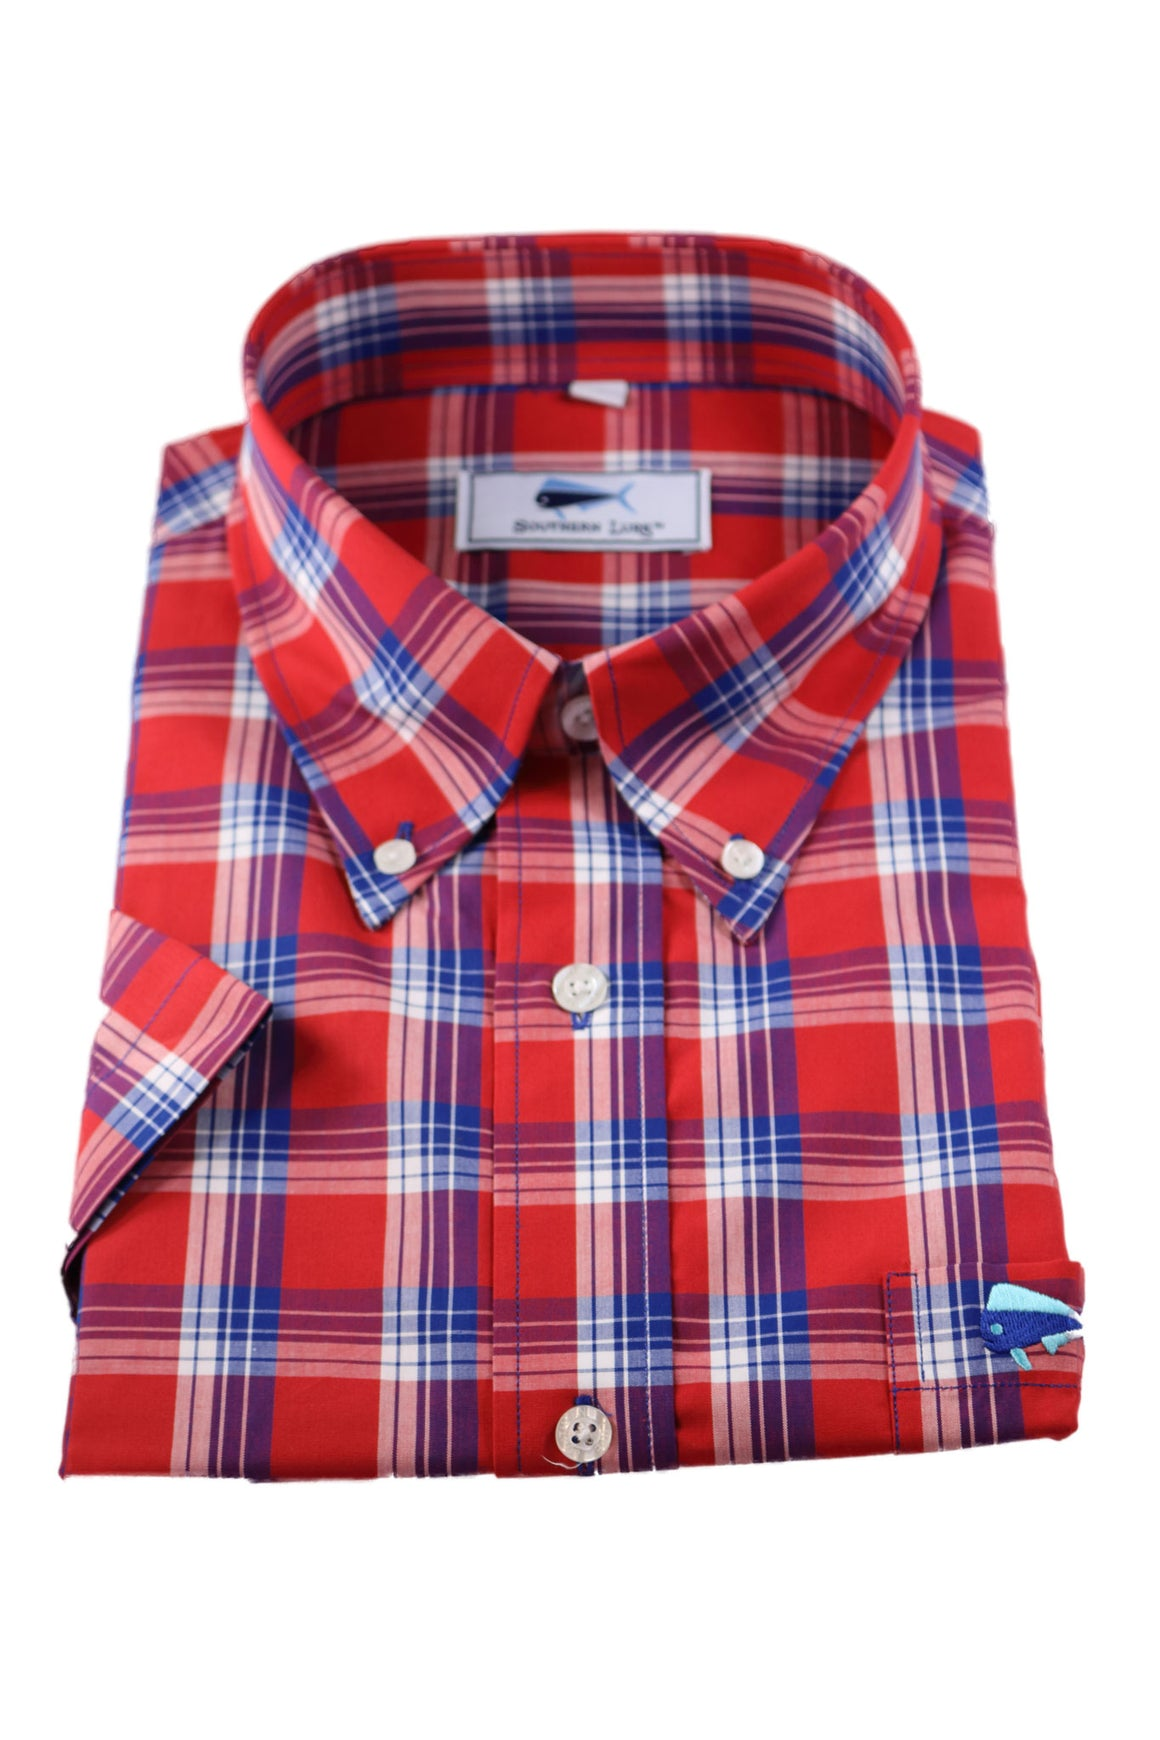 SS Woven Sport Shirt - Red & Navy Spring Tide Plaid